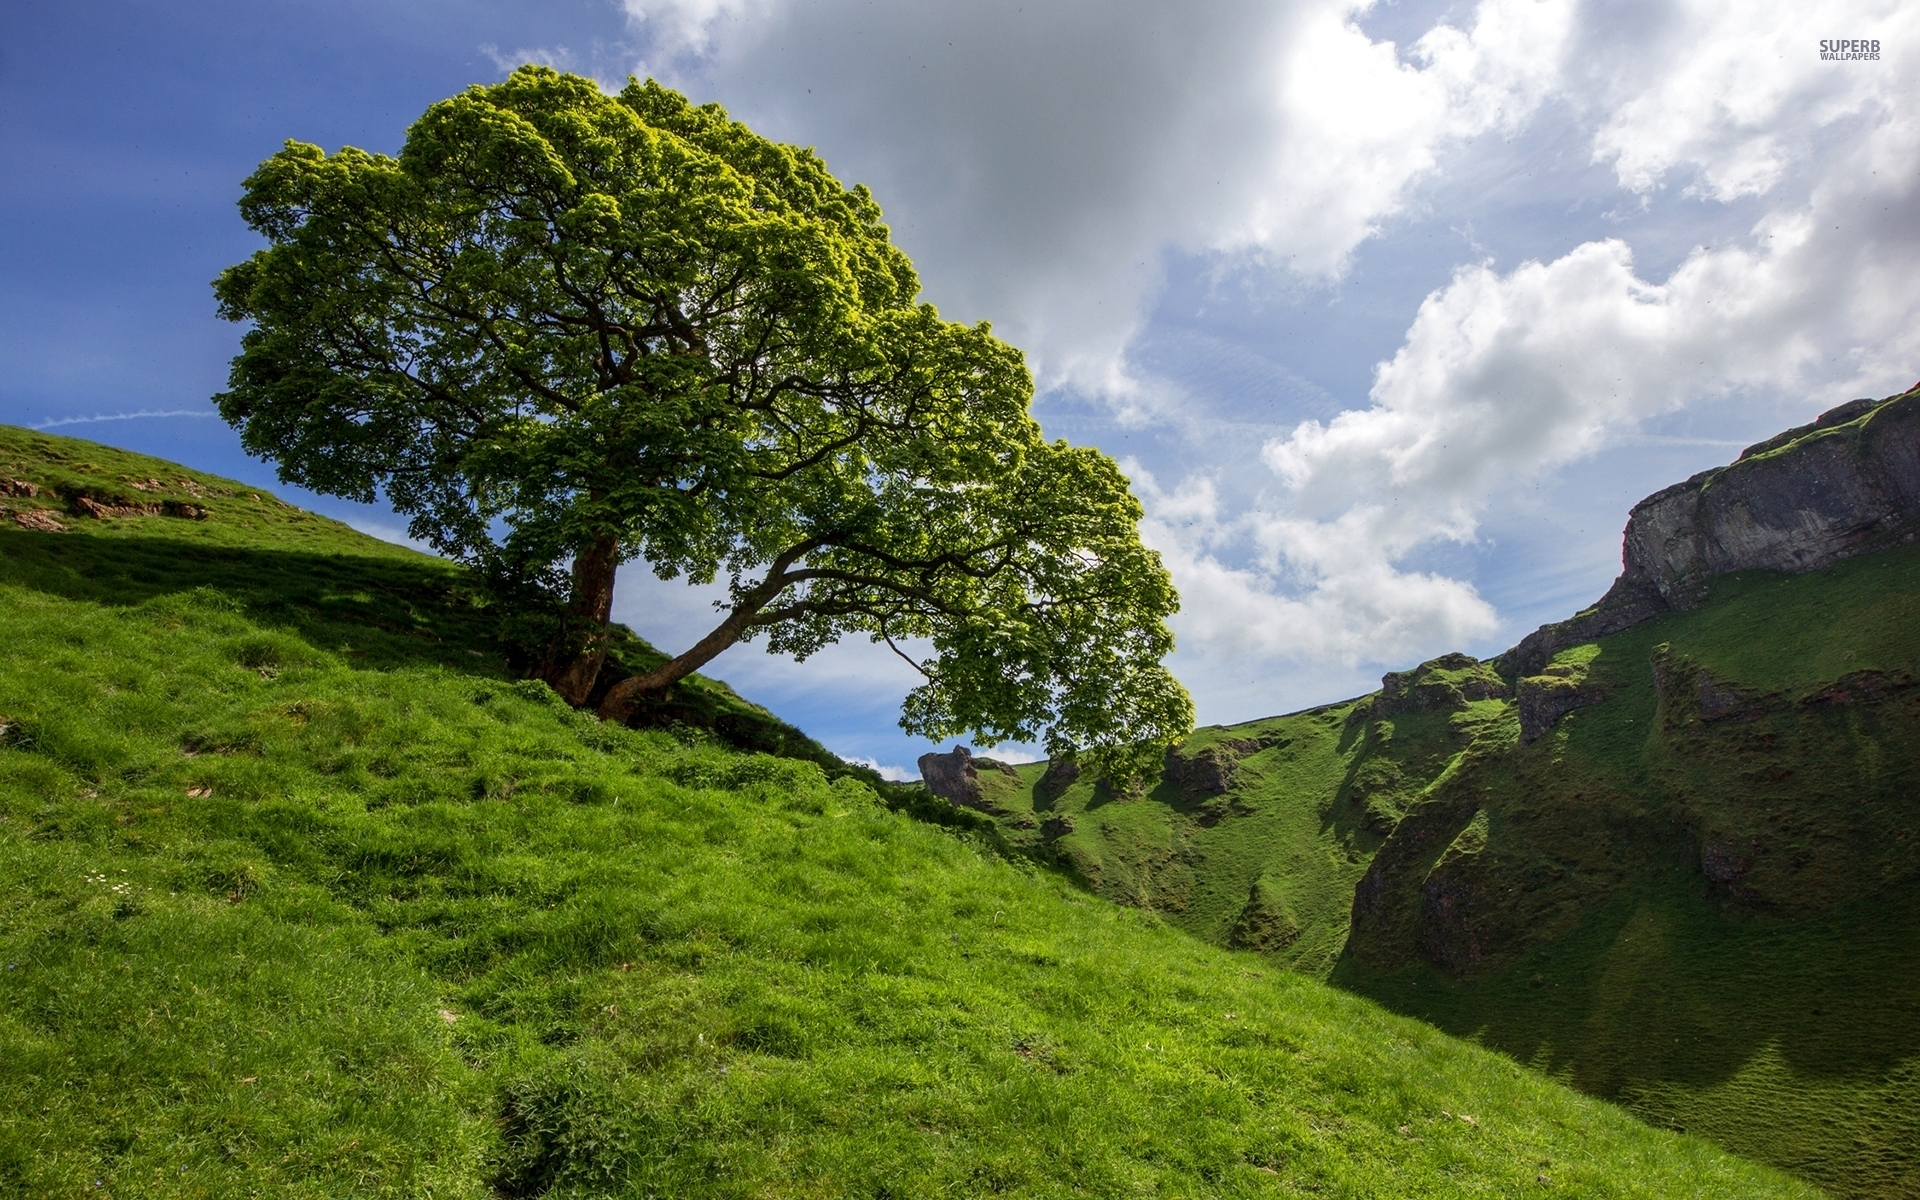 Pretty Wallpapers For Girls Nice Tree Hills Amp Clouds Wallpapers Nice Tree Hills